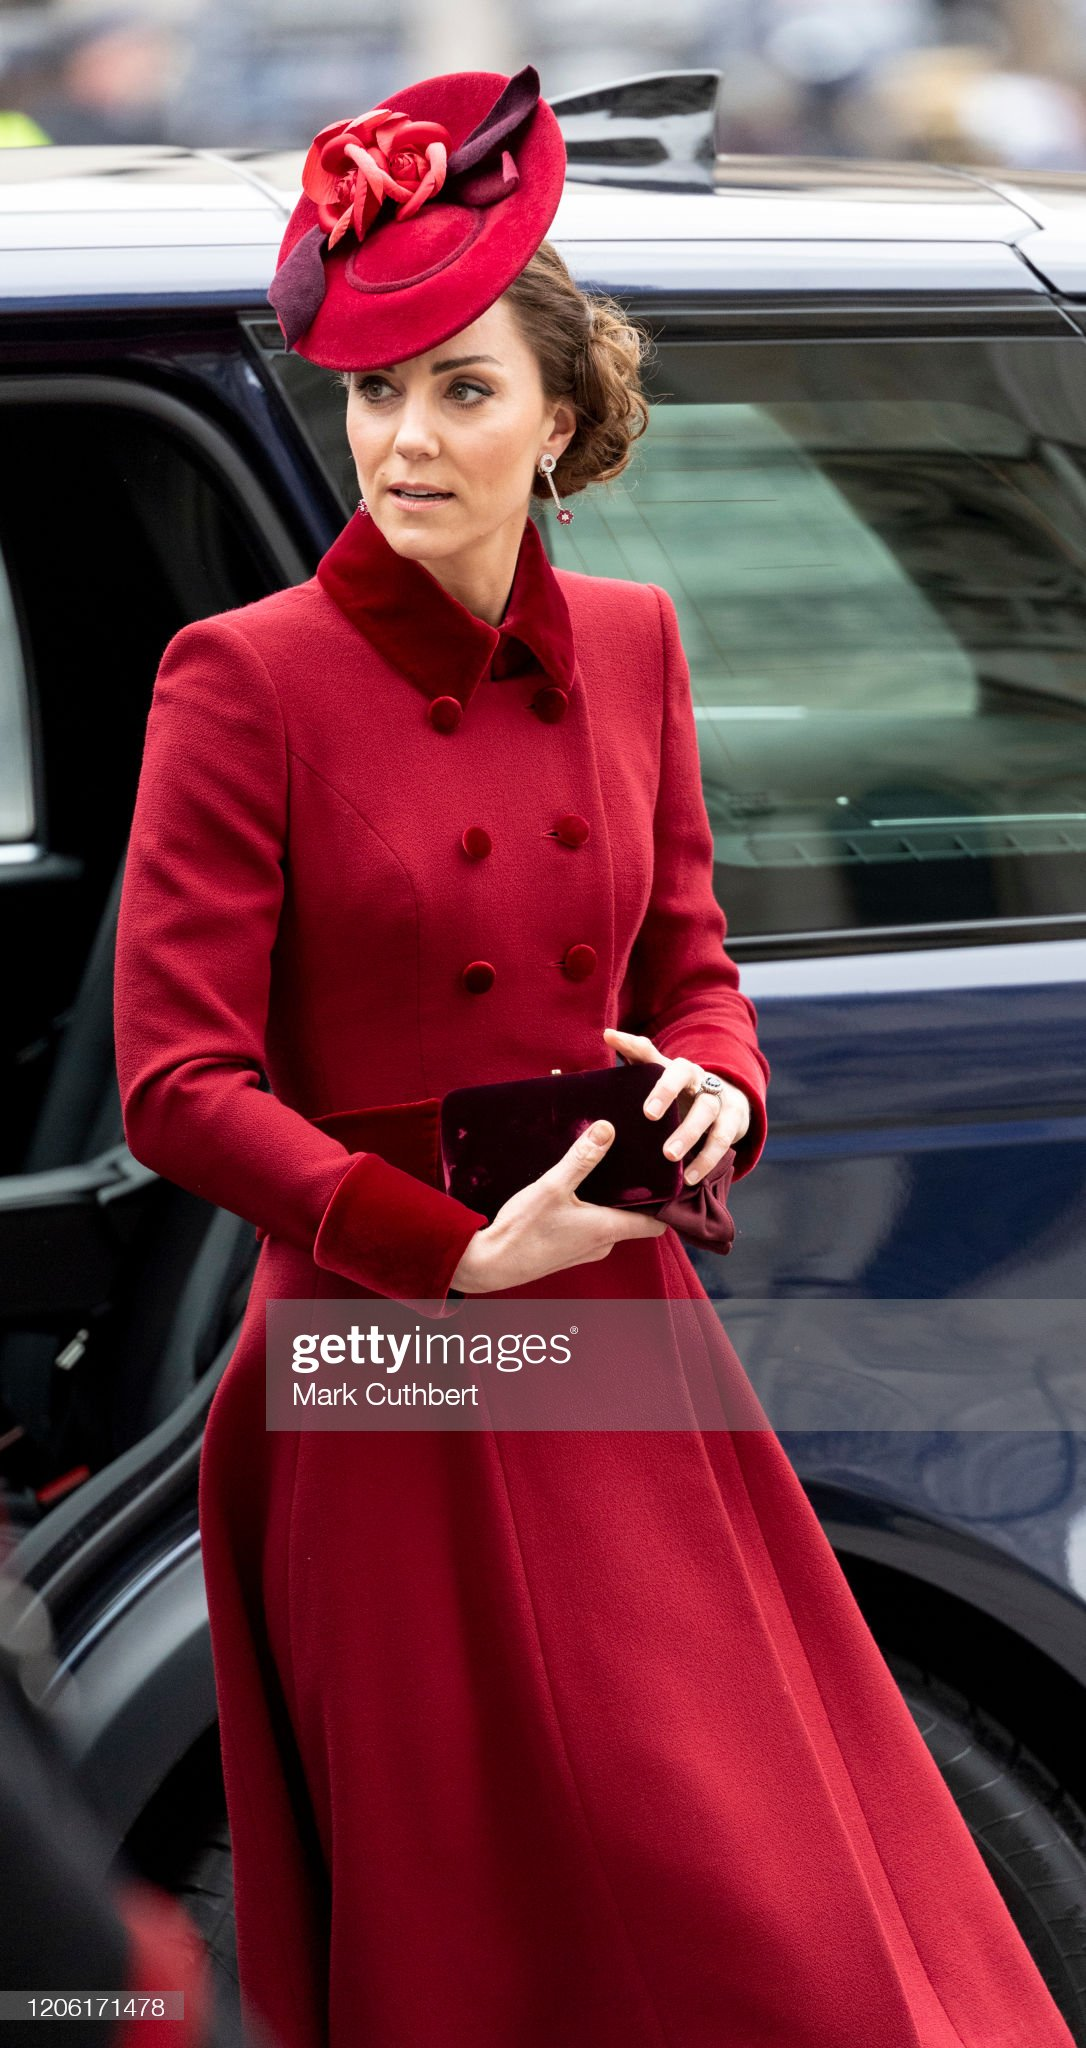 https://media.gettyimages.com/photos/catherine-duchess-of-cambridge-attends-the-commonwealth-day-service-picture-id1206171478?s=2048x2048